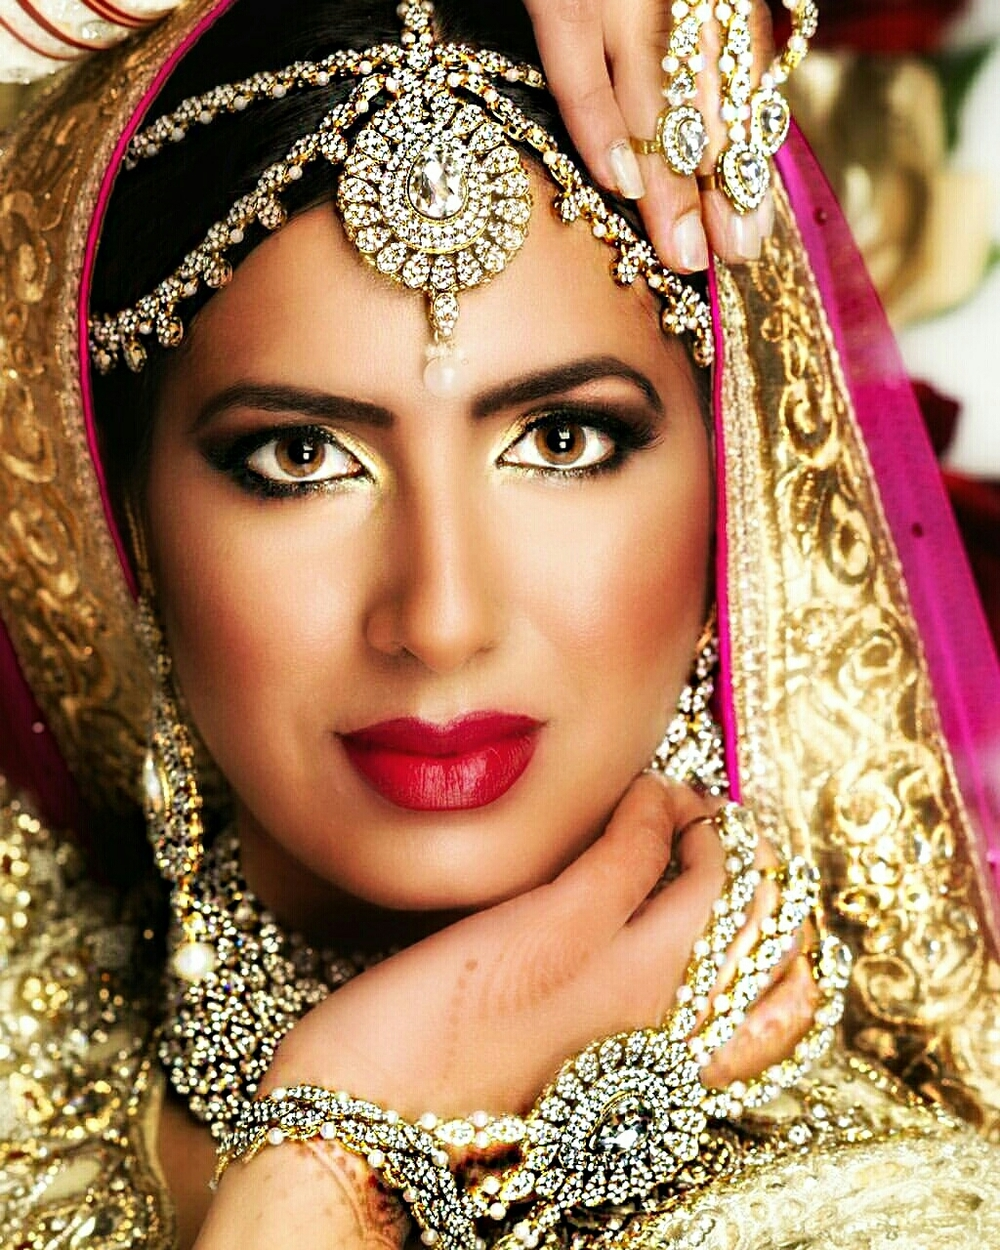 Indian makeup and hair by Pro Makeup by Natasha photography by Asif Raza and wardrobe from Nor Bollywood    Open booking for 2016  Please check if your wedding day is still available with us by emailing us at natasha@promakeupbynatasha.com